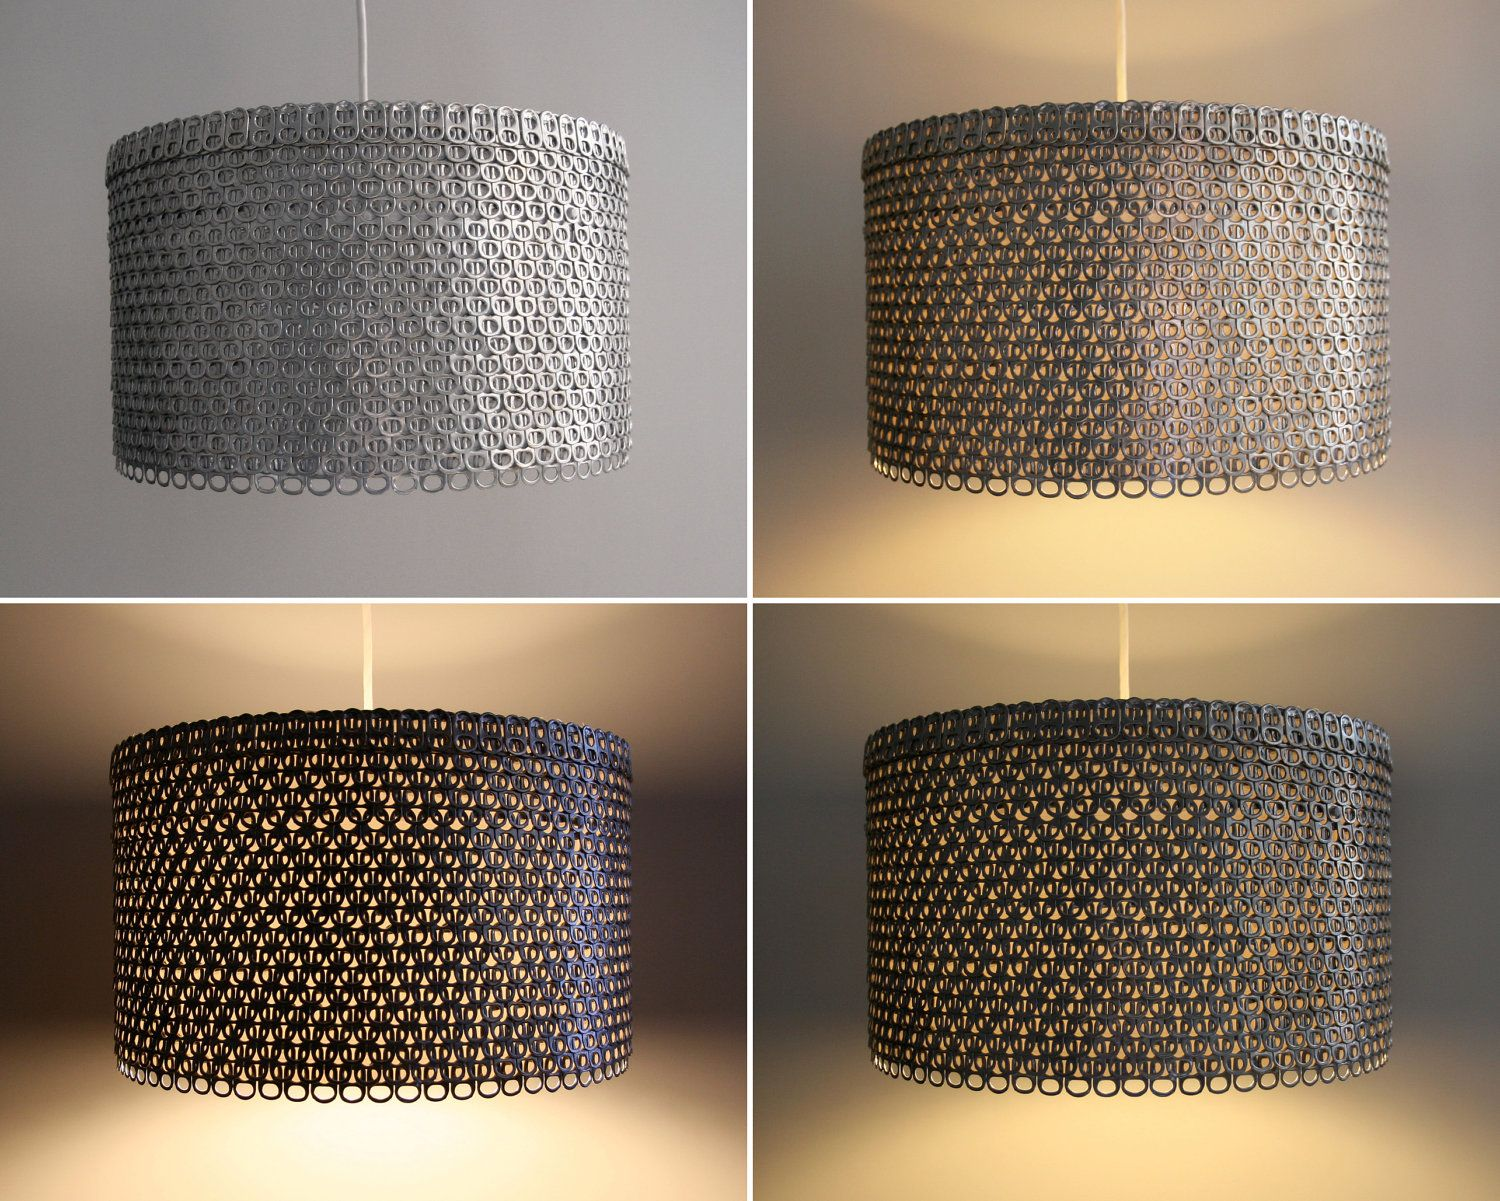 Soda Can Tab Drum Shade Large Eco Friendly Pendant Light Shade 350 00 Via Etsy Lamparas Artesanales Chapitas De Lata De Refresco Pantallas De Lamparas